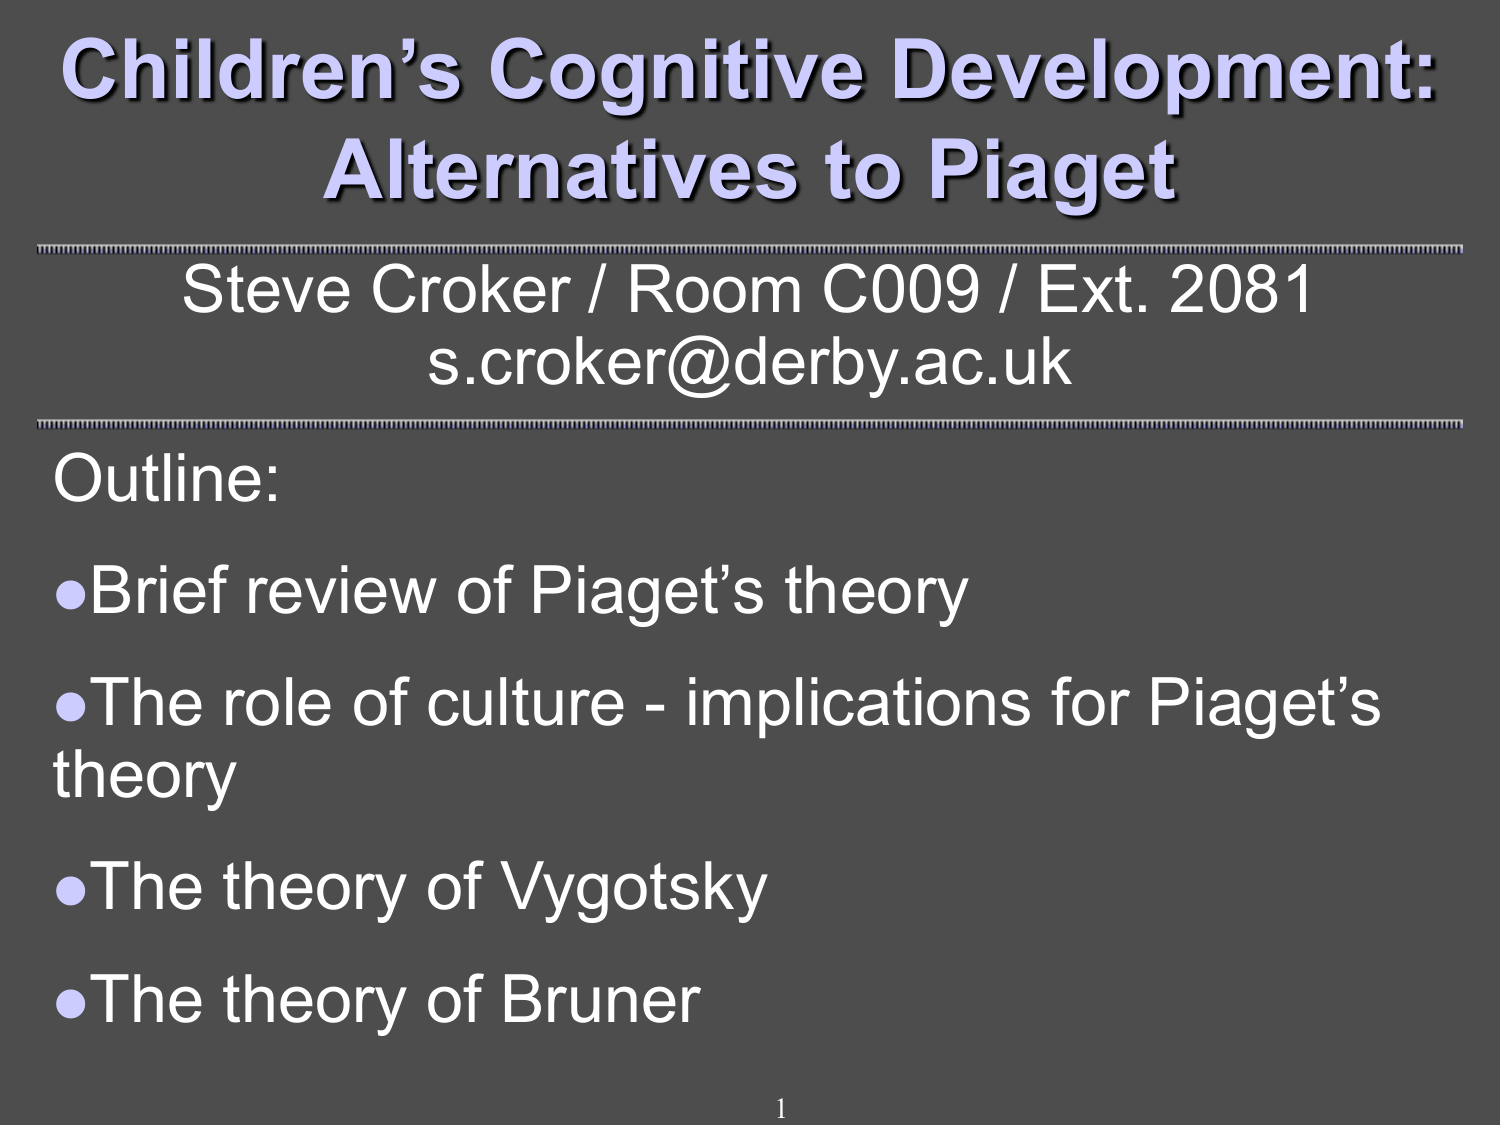 bruner and piaget compare and contrast